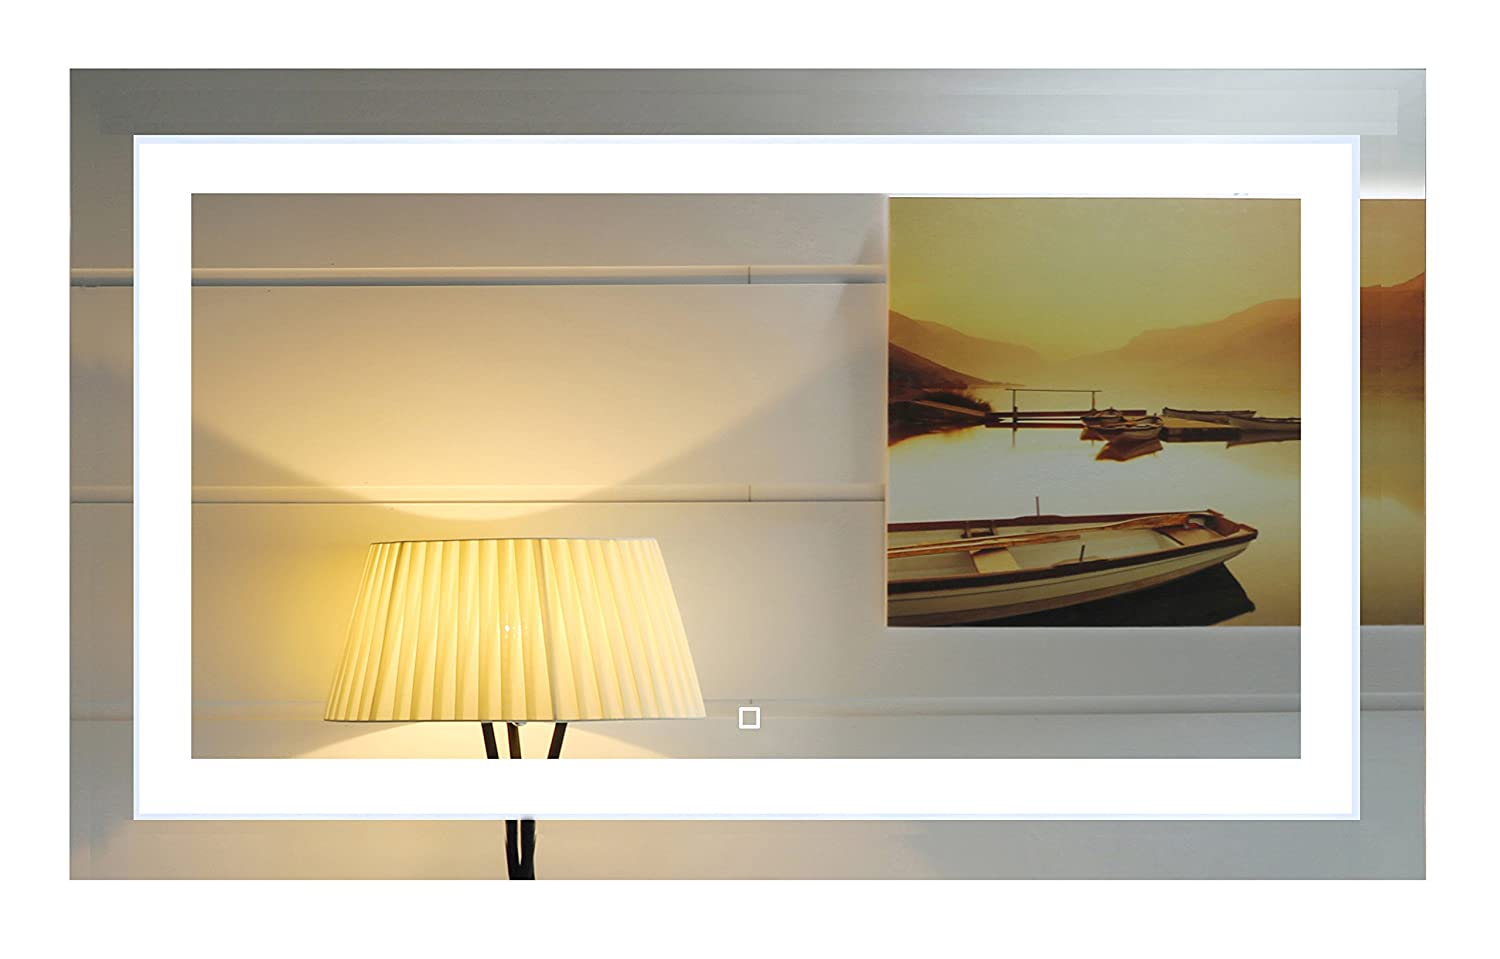 Amazon.com: 40x24 inch Wall Mounted Led Lighted Bathroom Mirror with ...